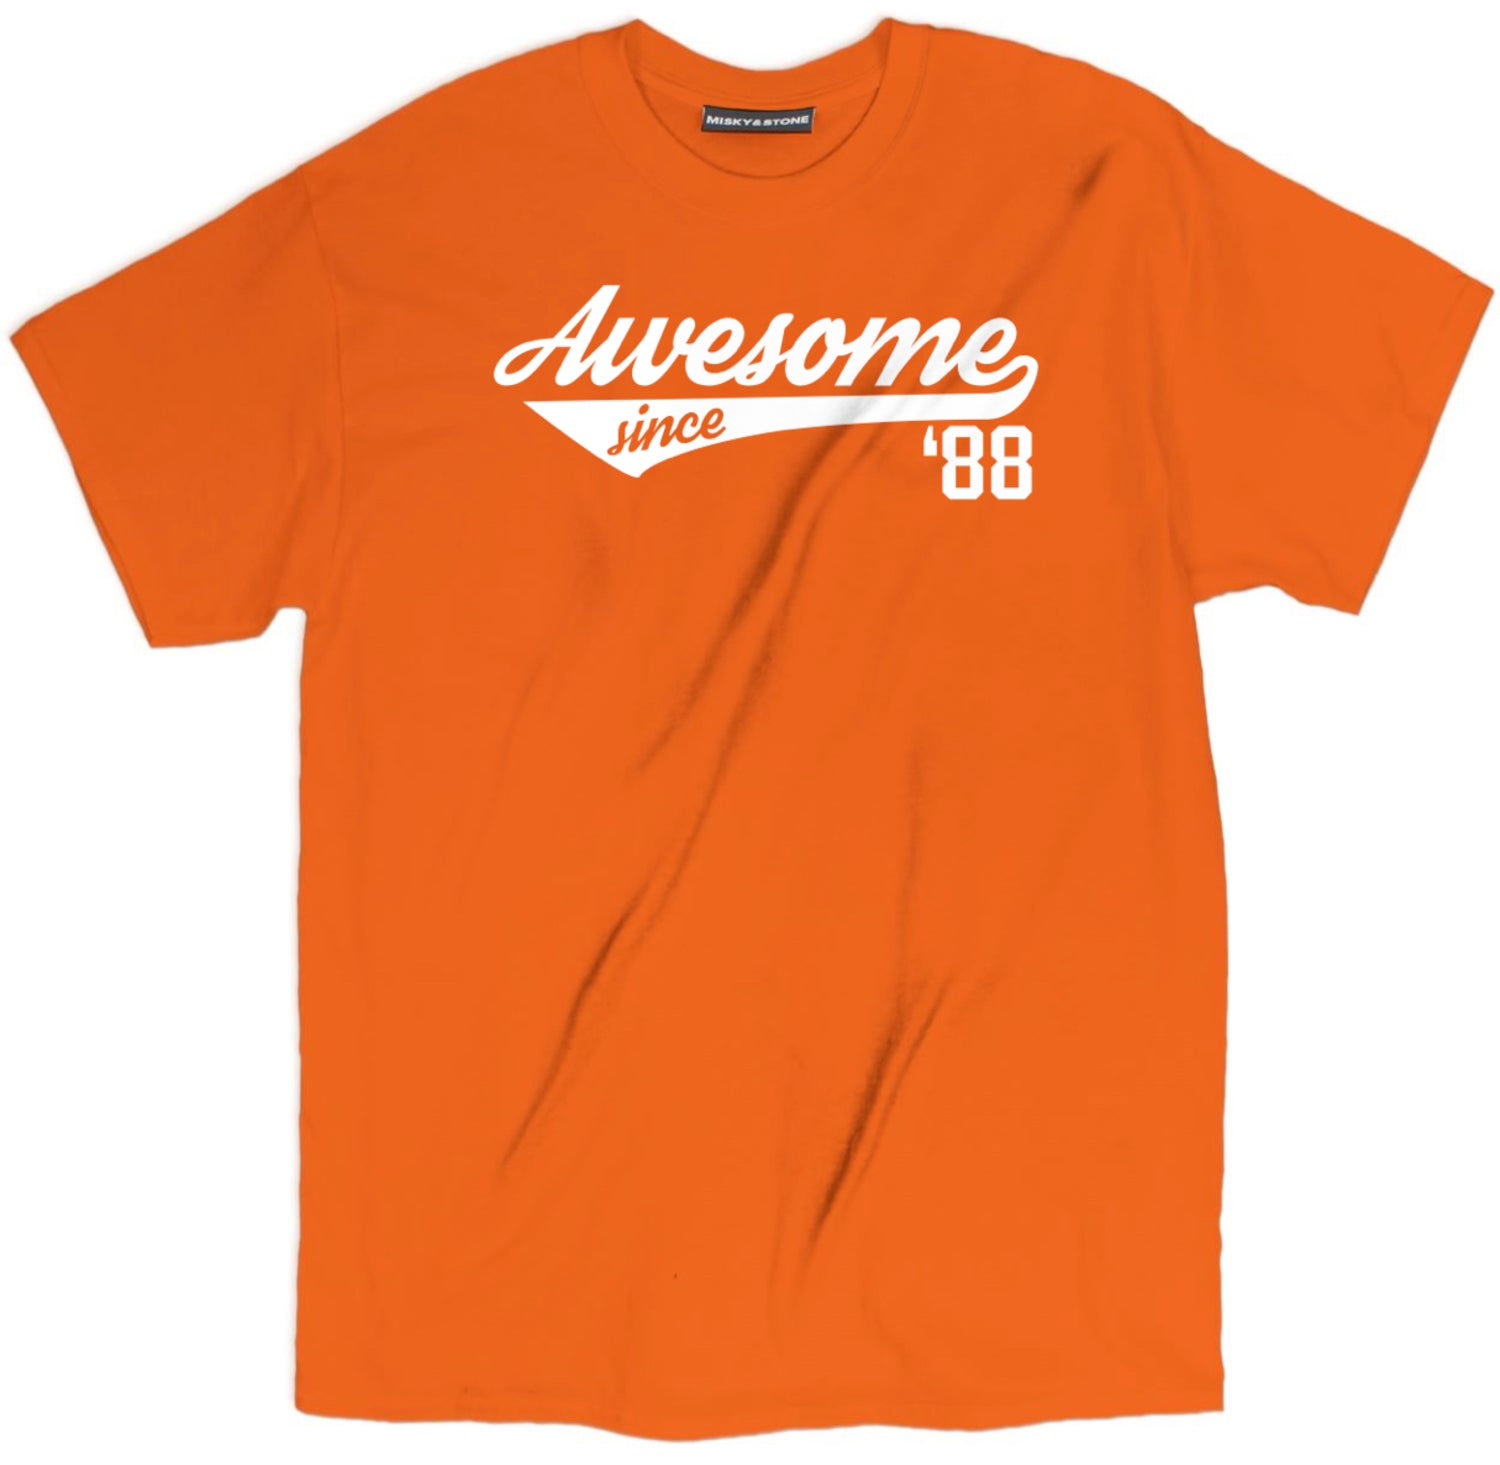 Awesome Since 88 Tee